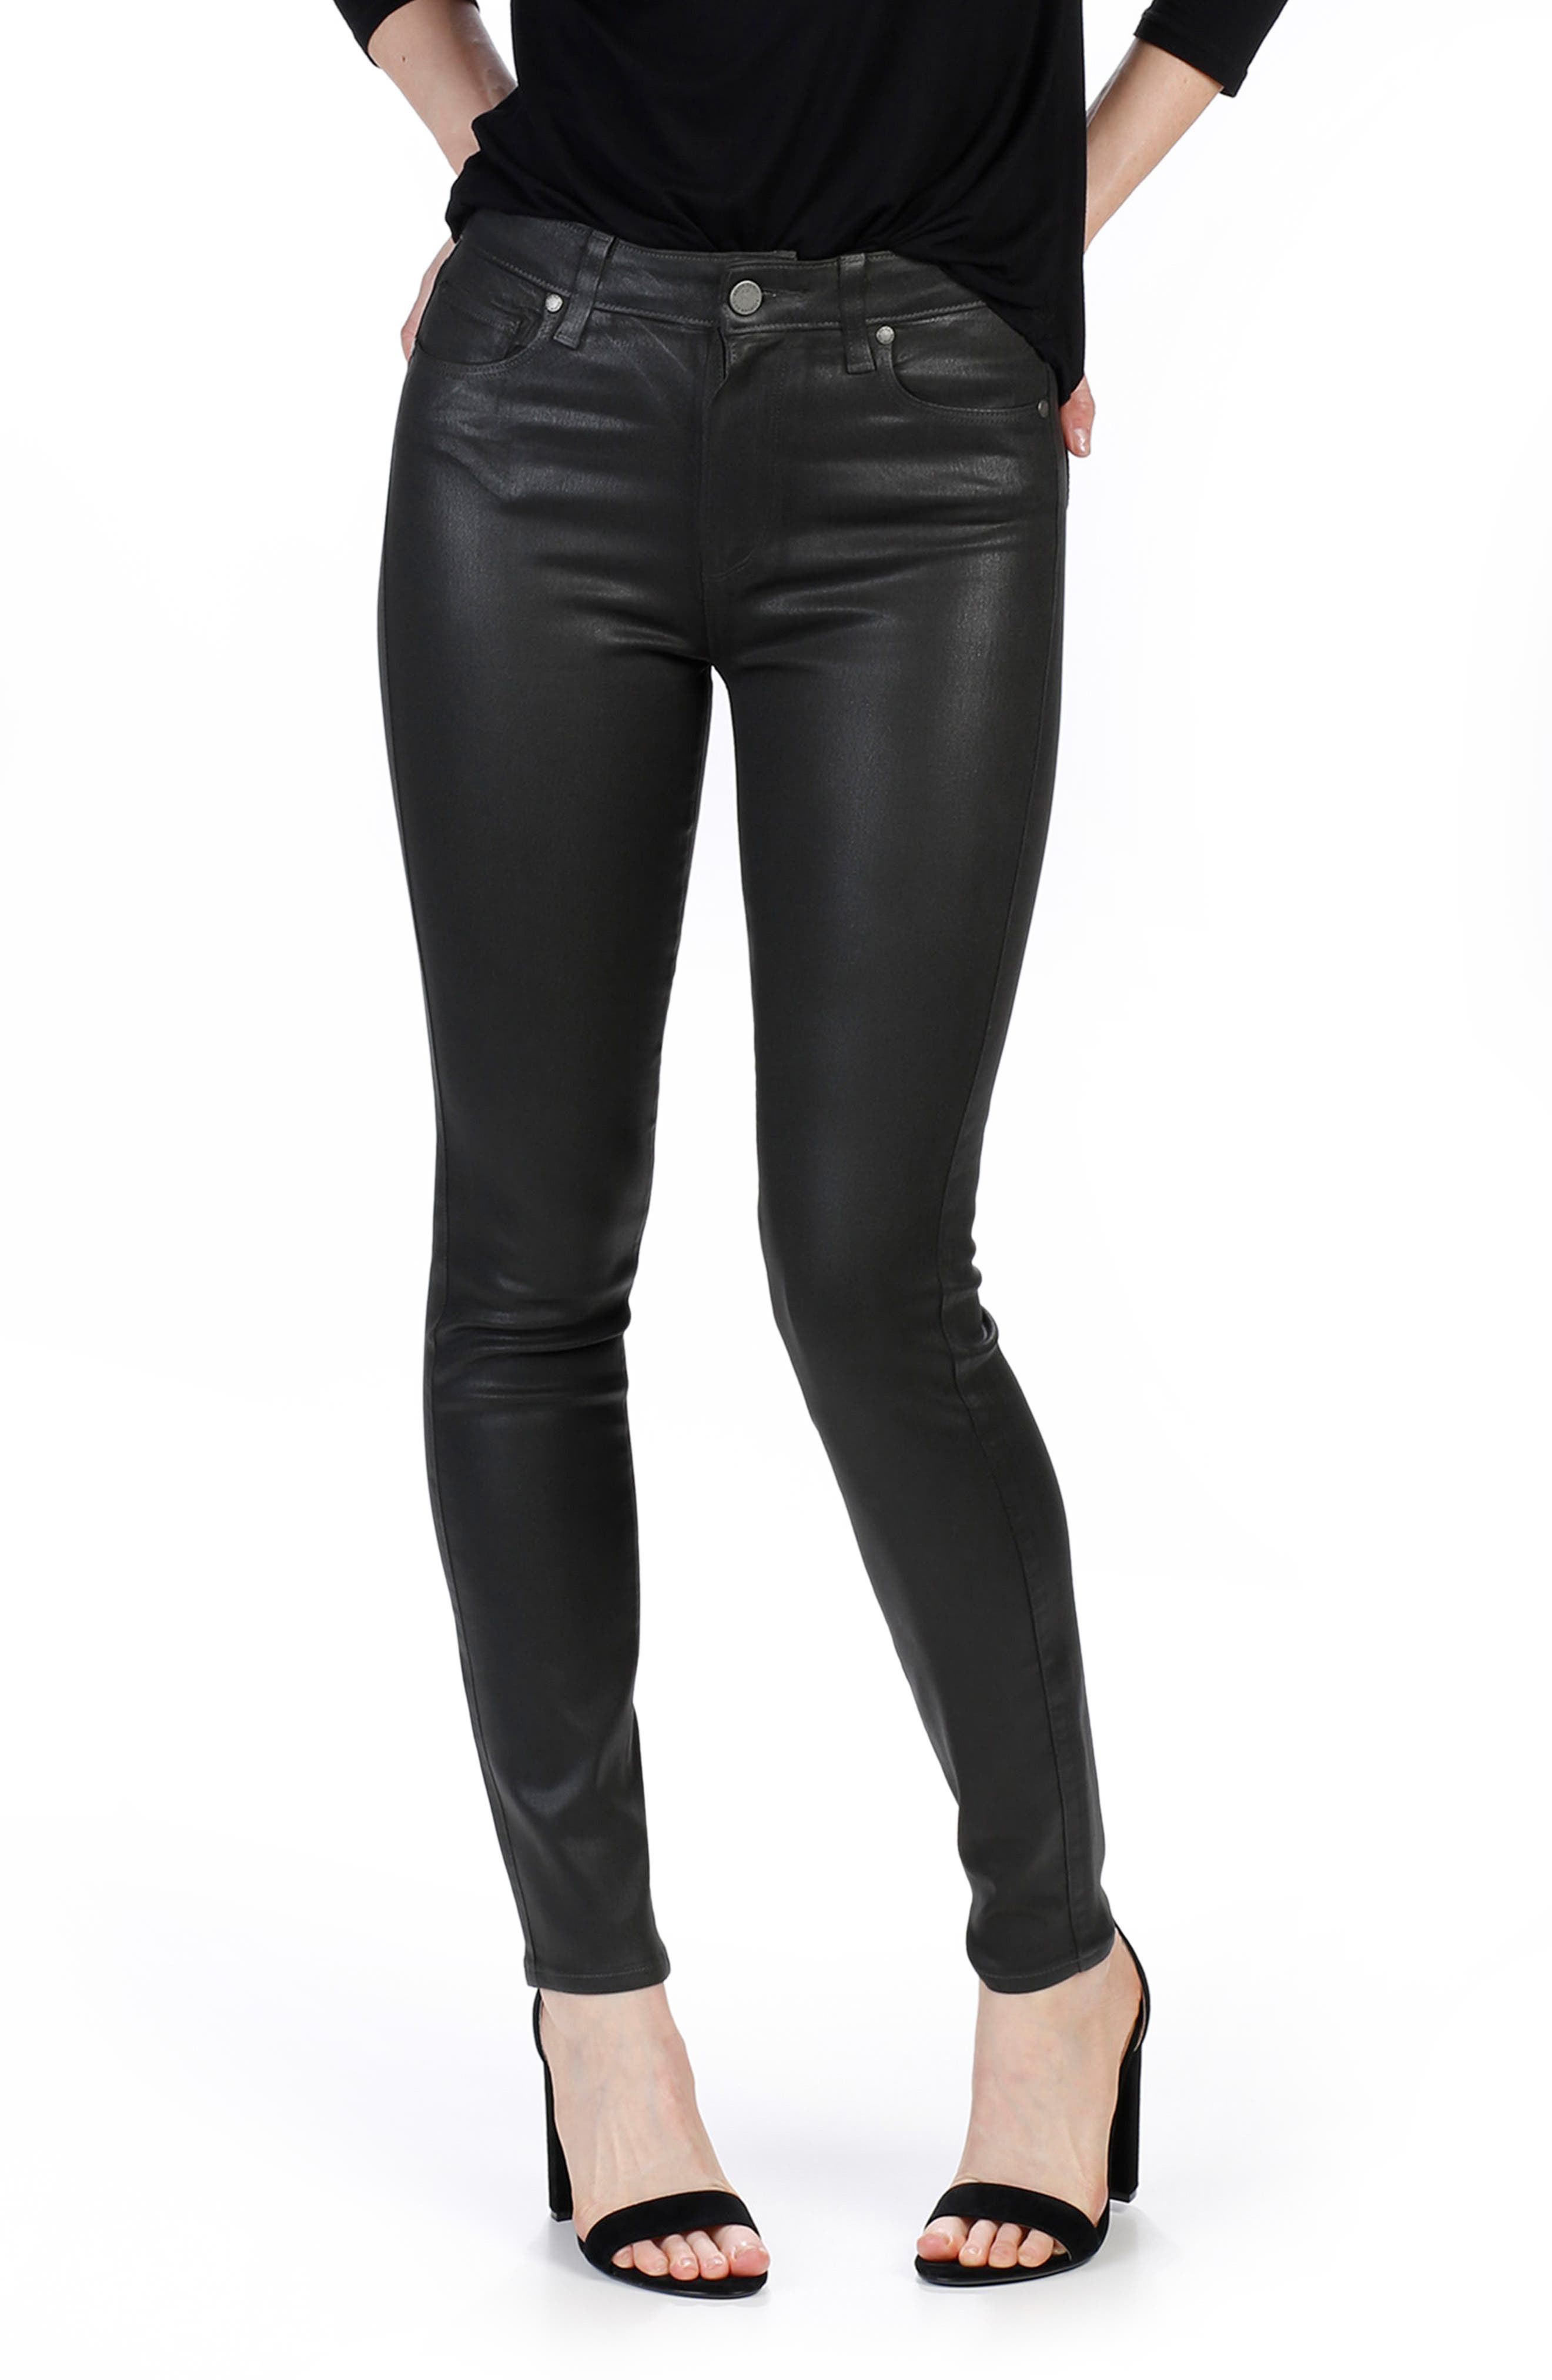 Transcend - Hoxton Coated High Waist Ankle Skinny Jeans,                         Main,                         color,